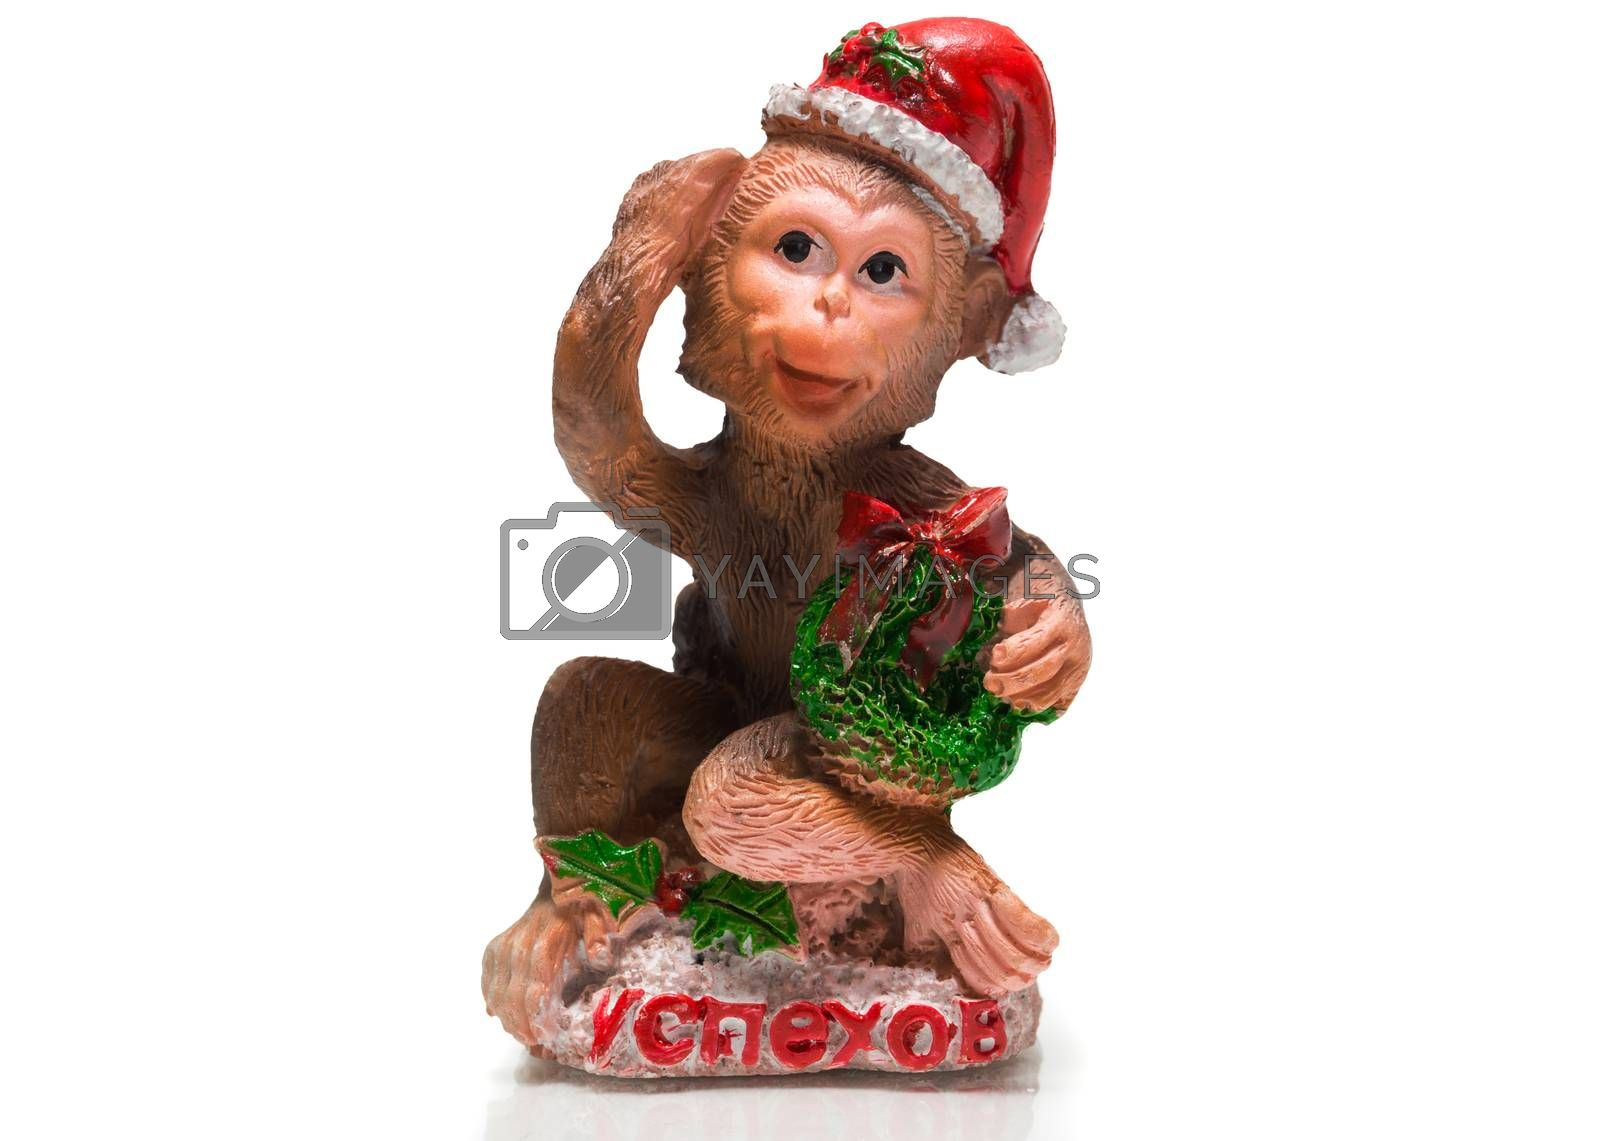 The photo shows a monkey with a gift